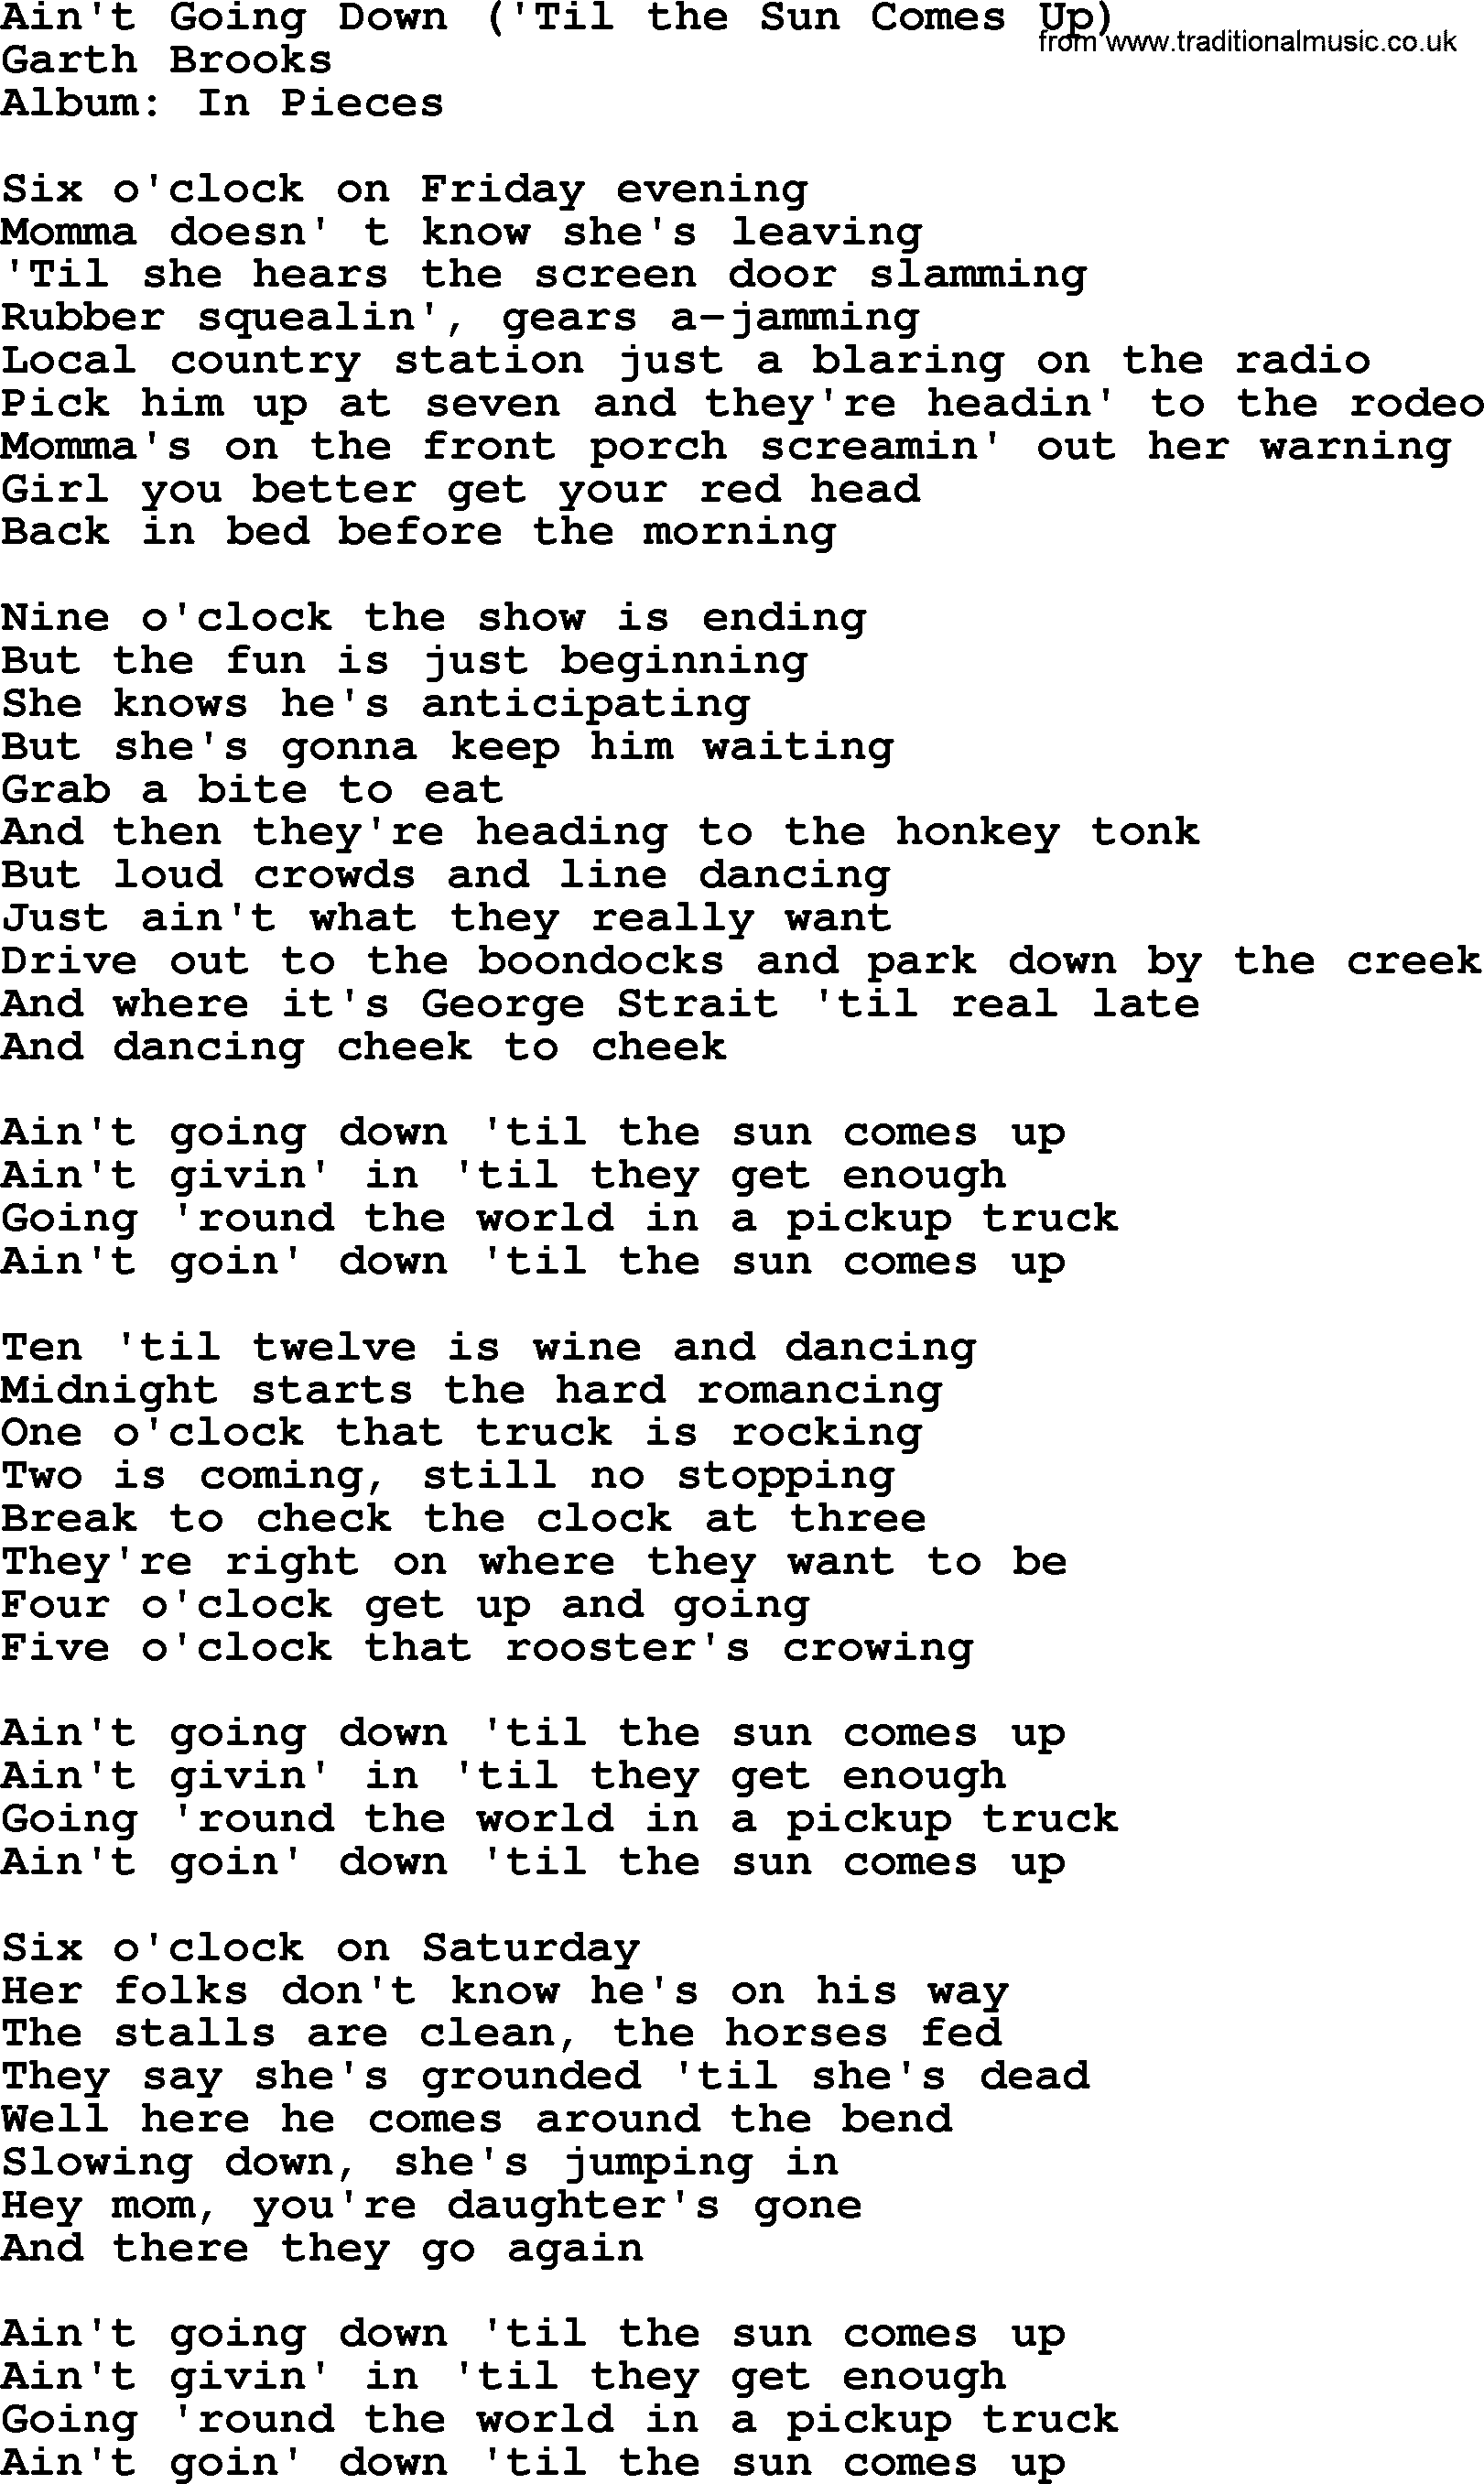 Ain't Going Down ('Til the Sun Comes Up) Lyrics